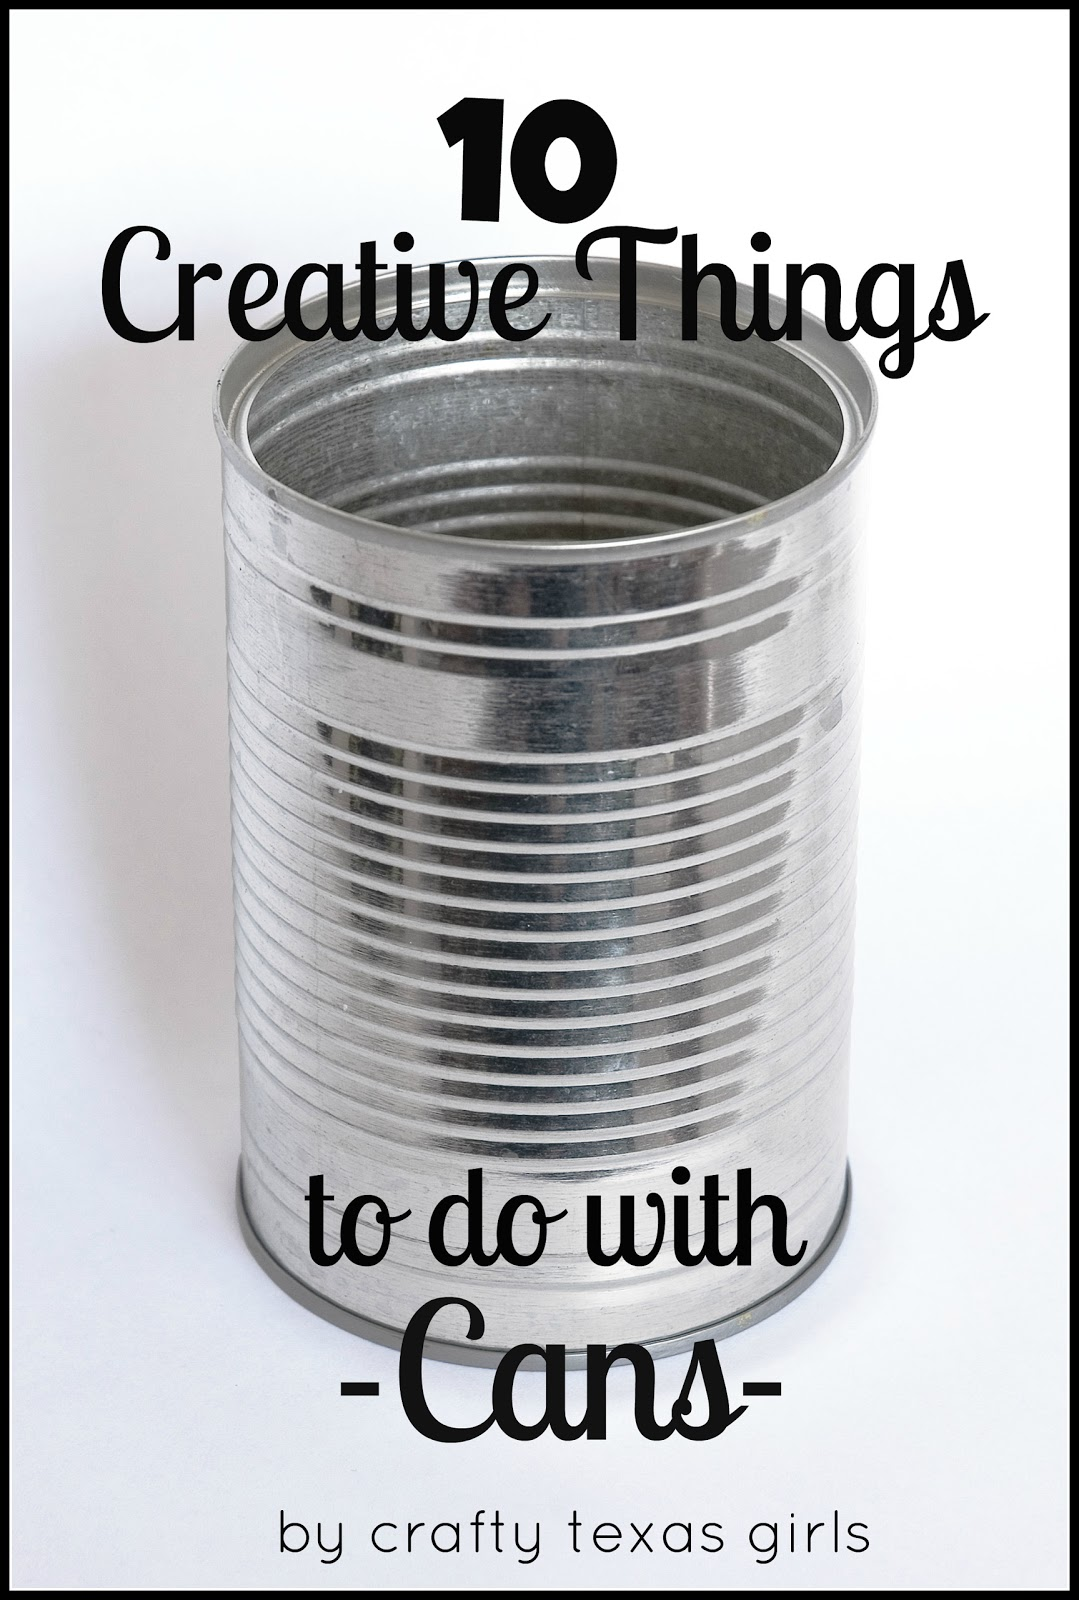 Crafty texas girls 10 creative things to do with cans for Tin cans for crafts